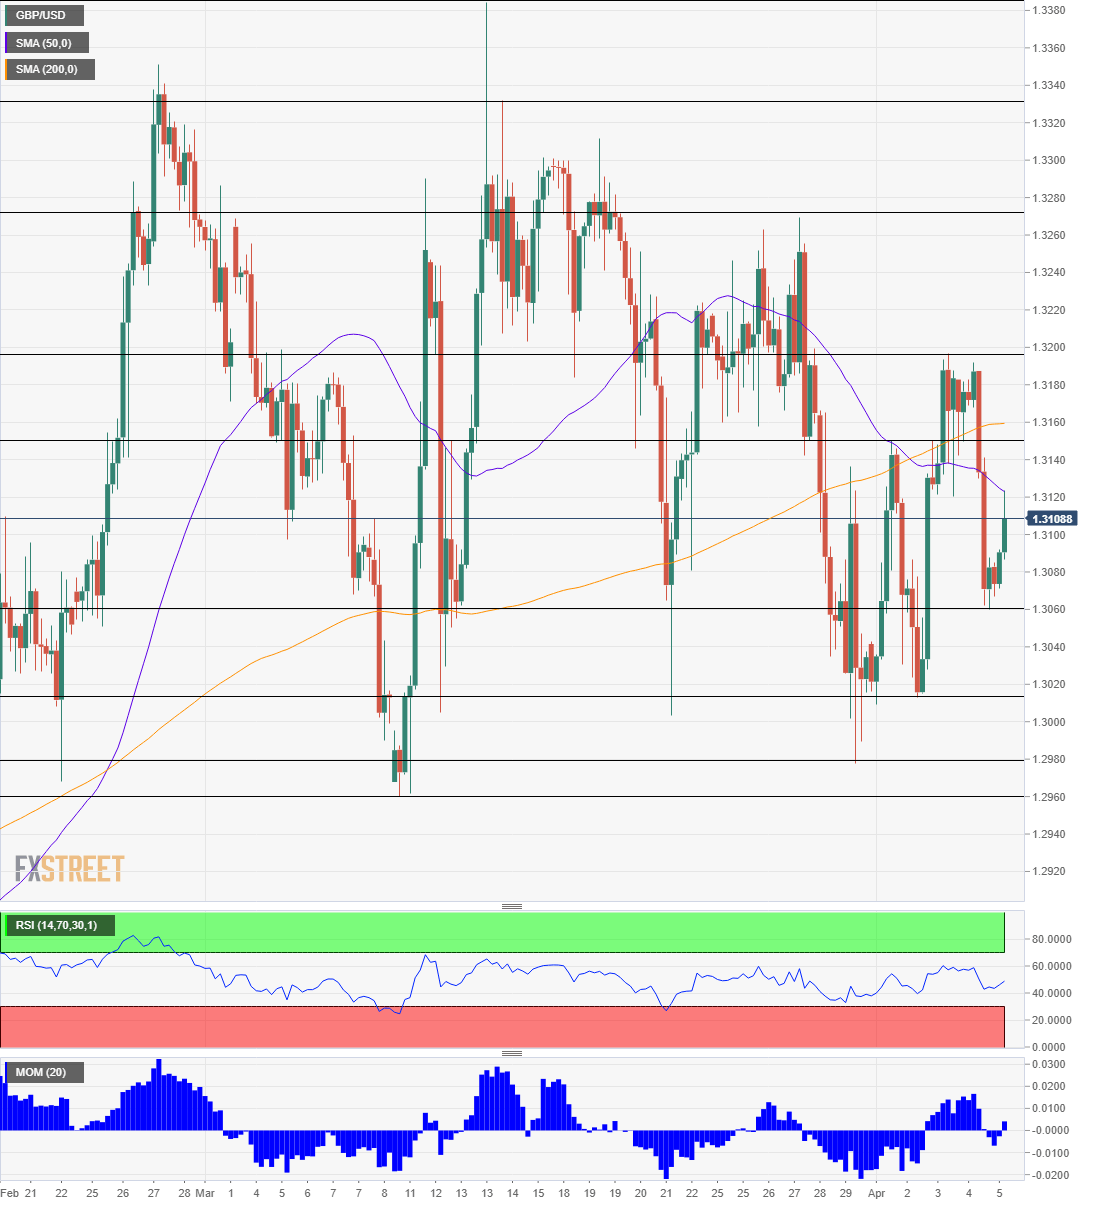 GBP/USD technical analysis April 8 2019